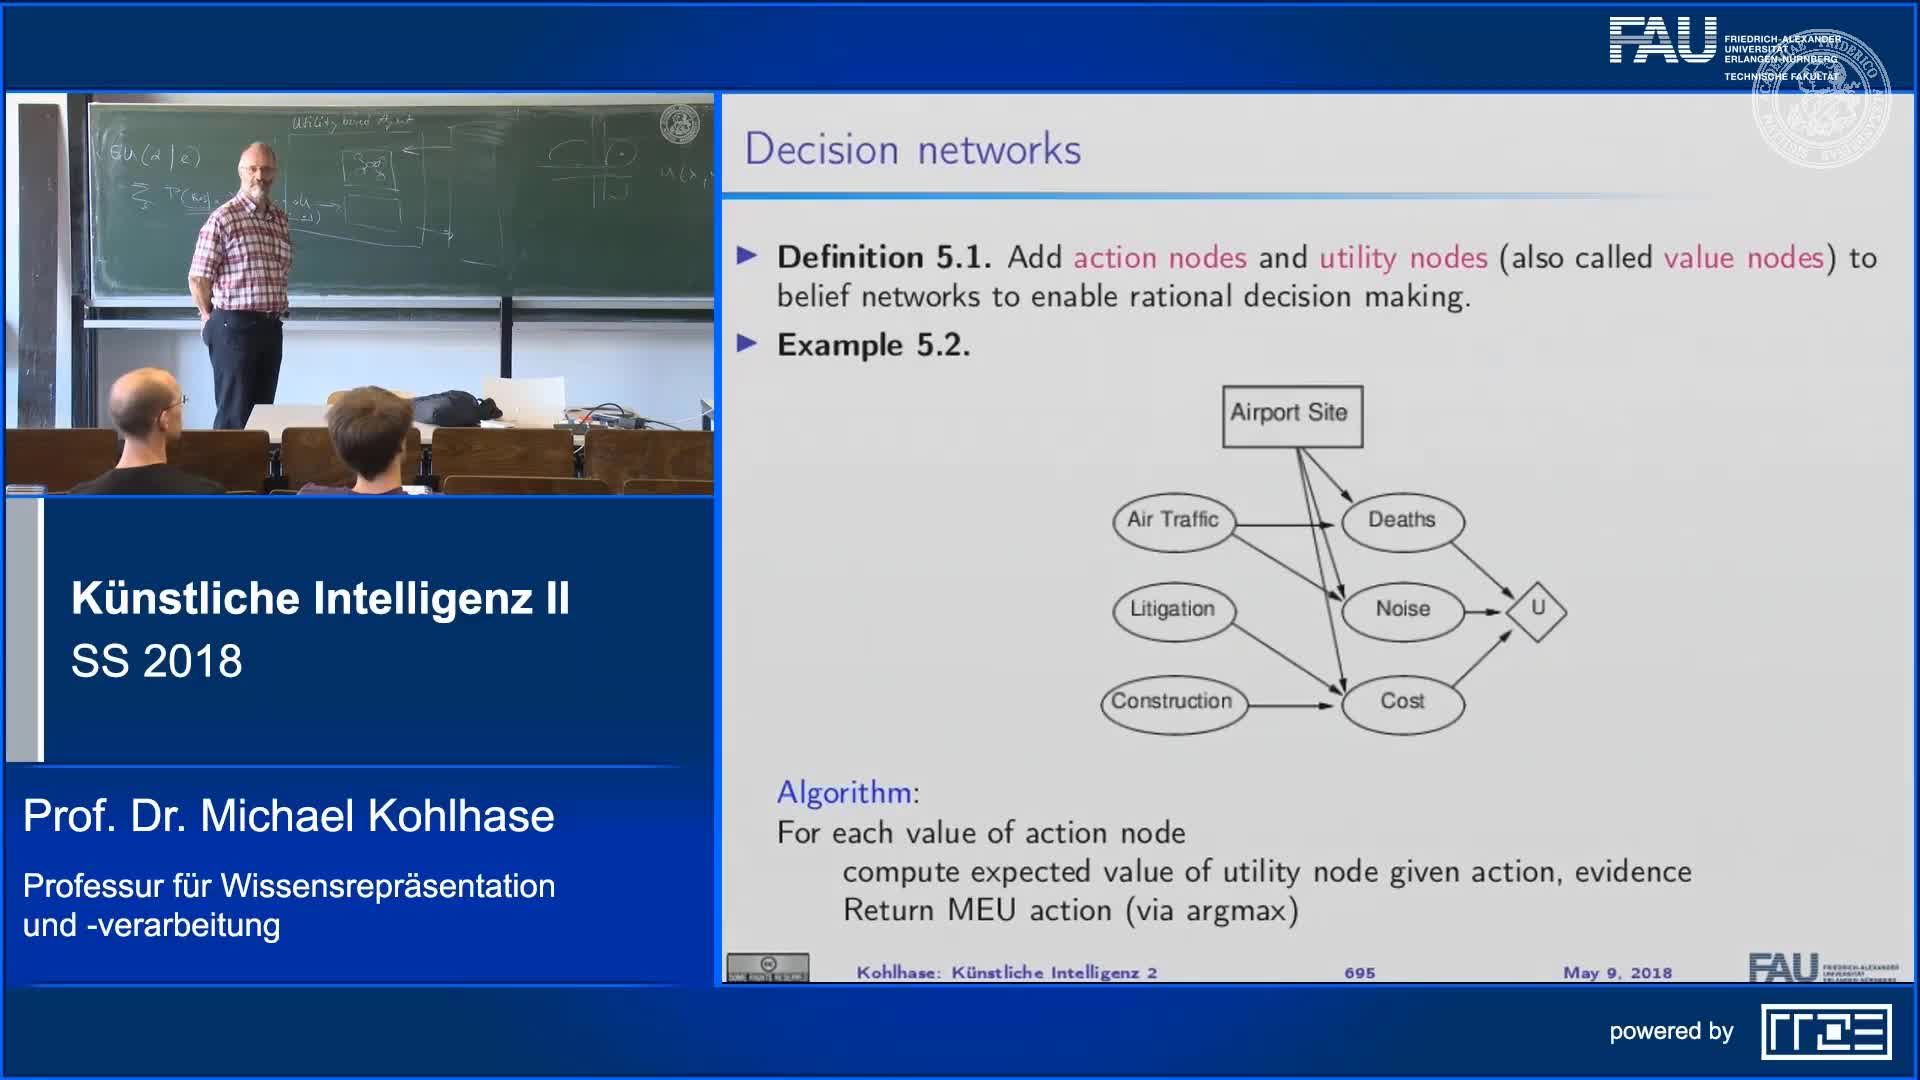 22.5. Decision Networks preview image